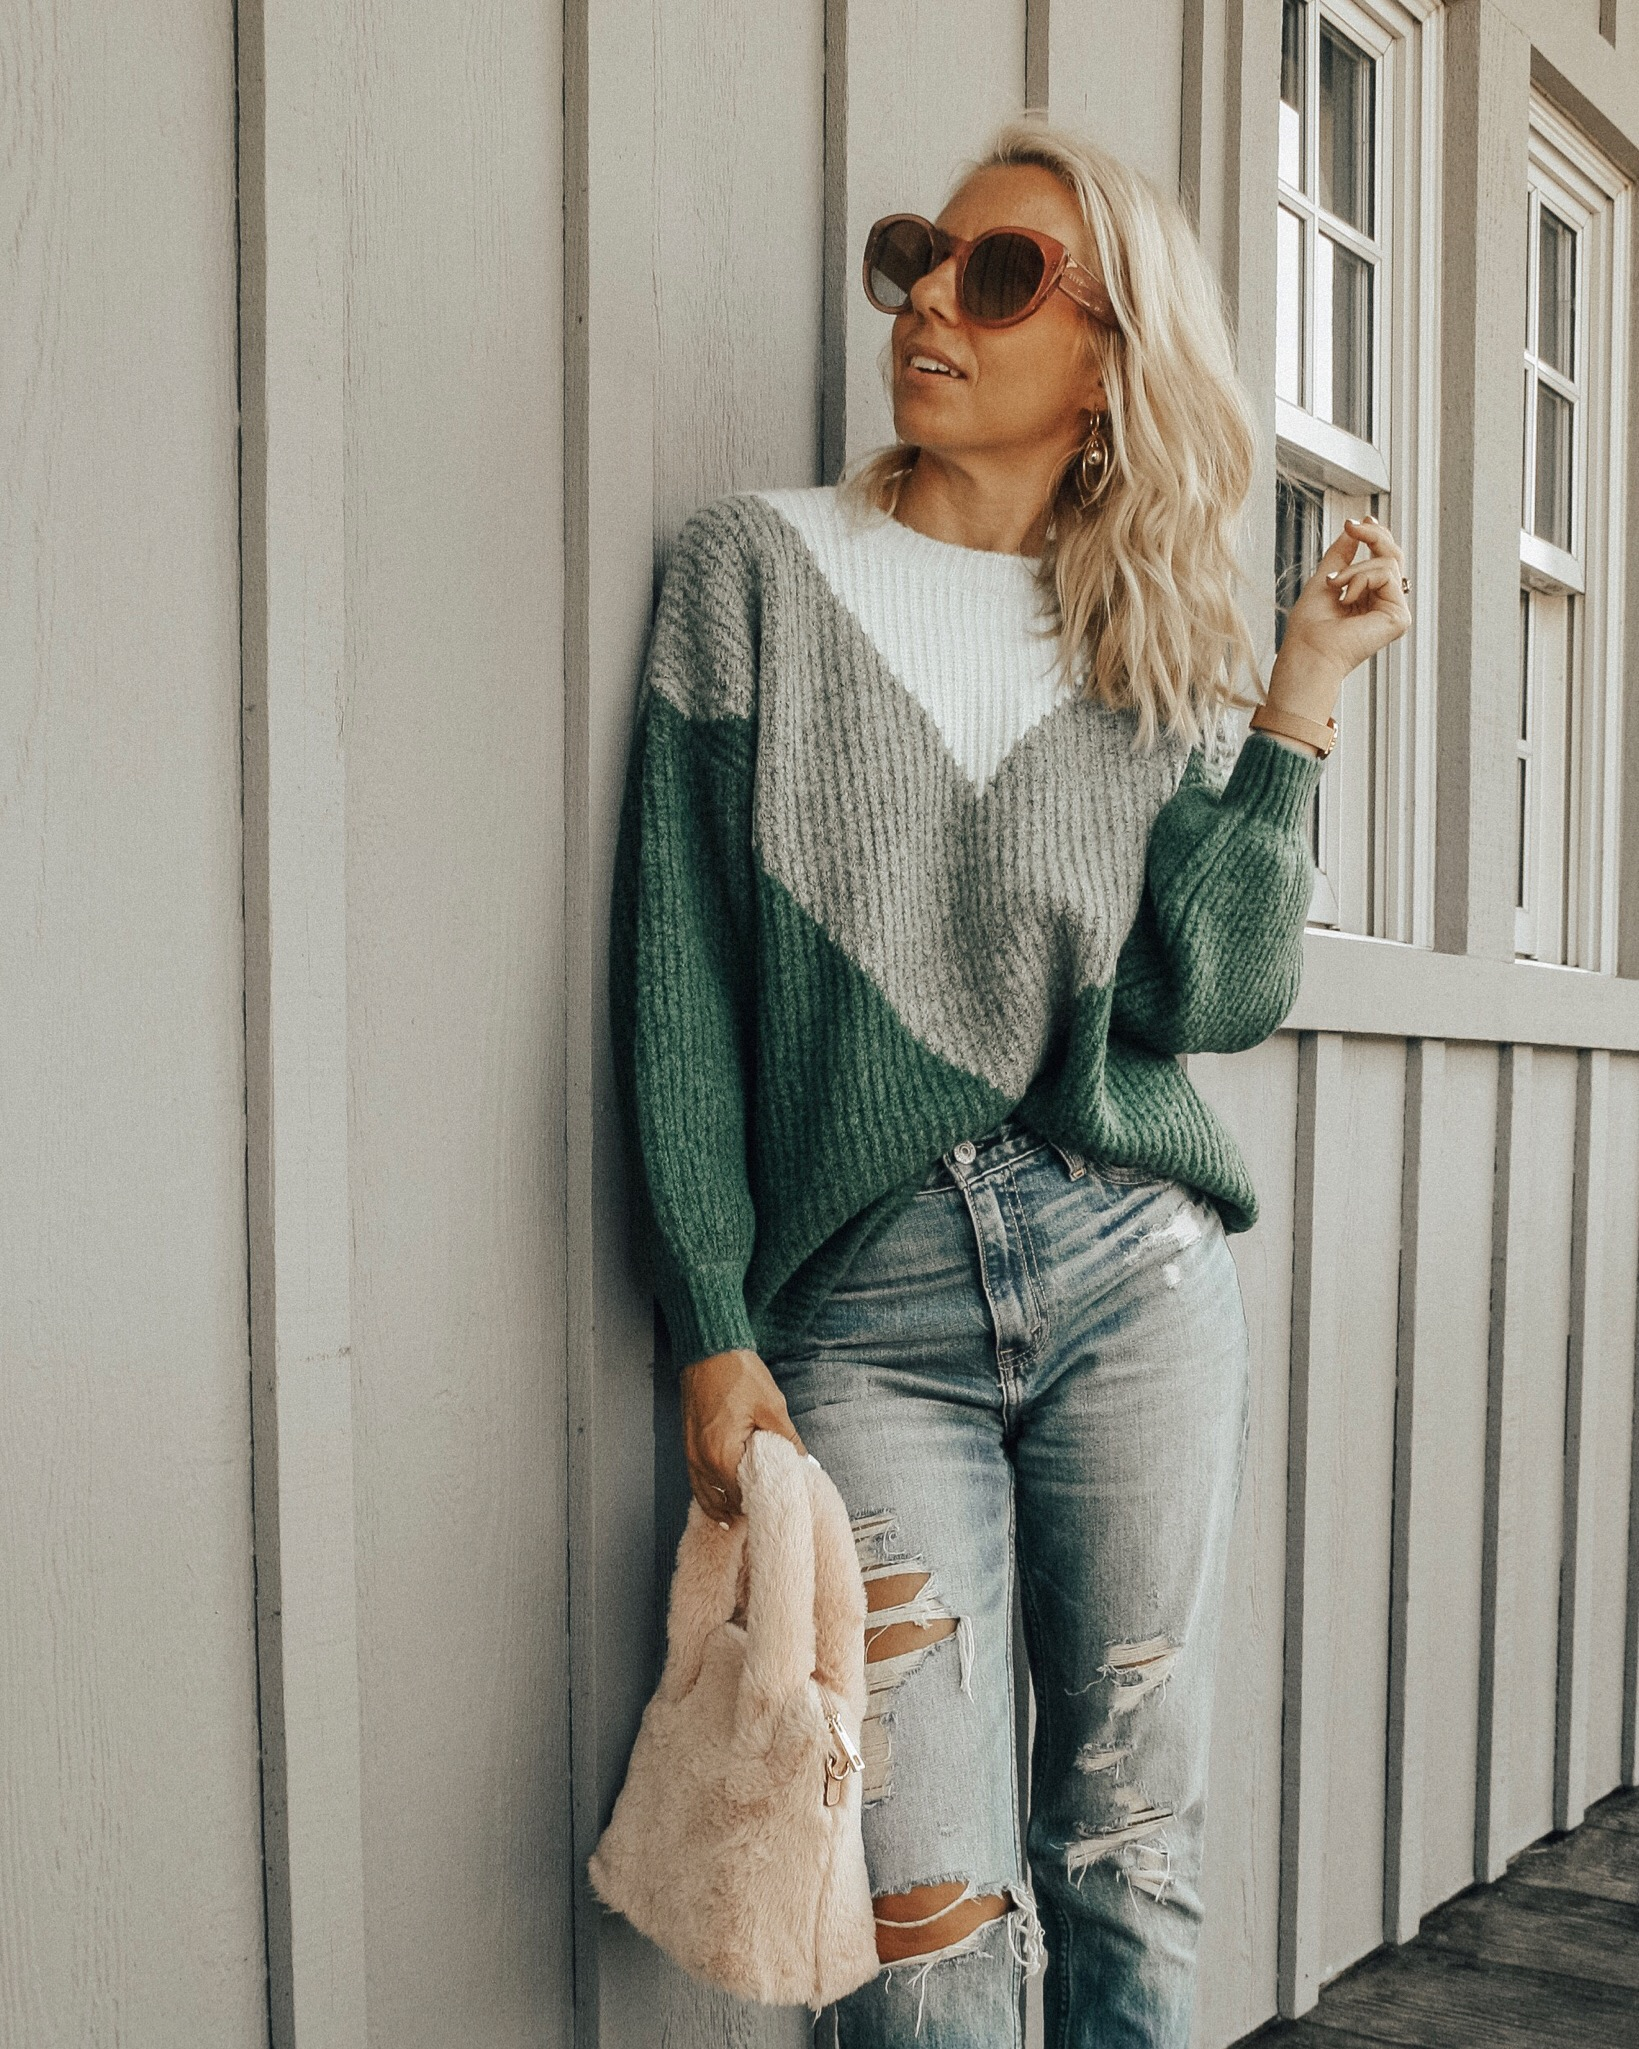 OCTOBER TOP 10- Jaclyn De Leon Style + casual sweater + chevron print + fall fashion + #sweaterweather + affordable fashion + winter style + casual street style + denim + mom style + stripes + faux fur handbag + retro style + oversized sunglasses + forever 21